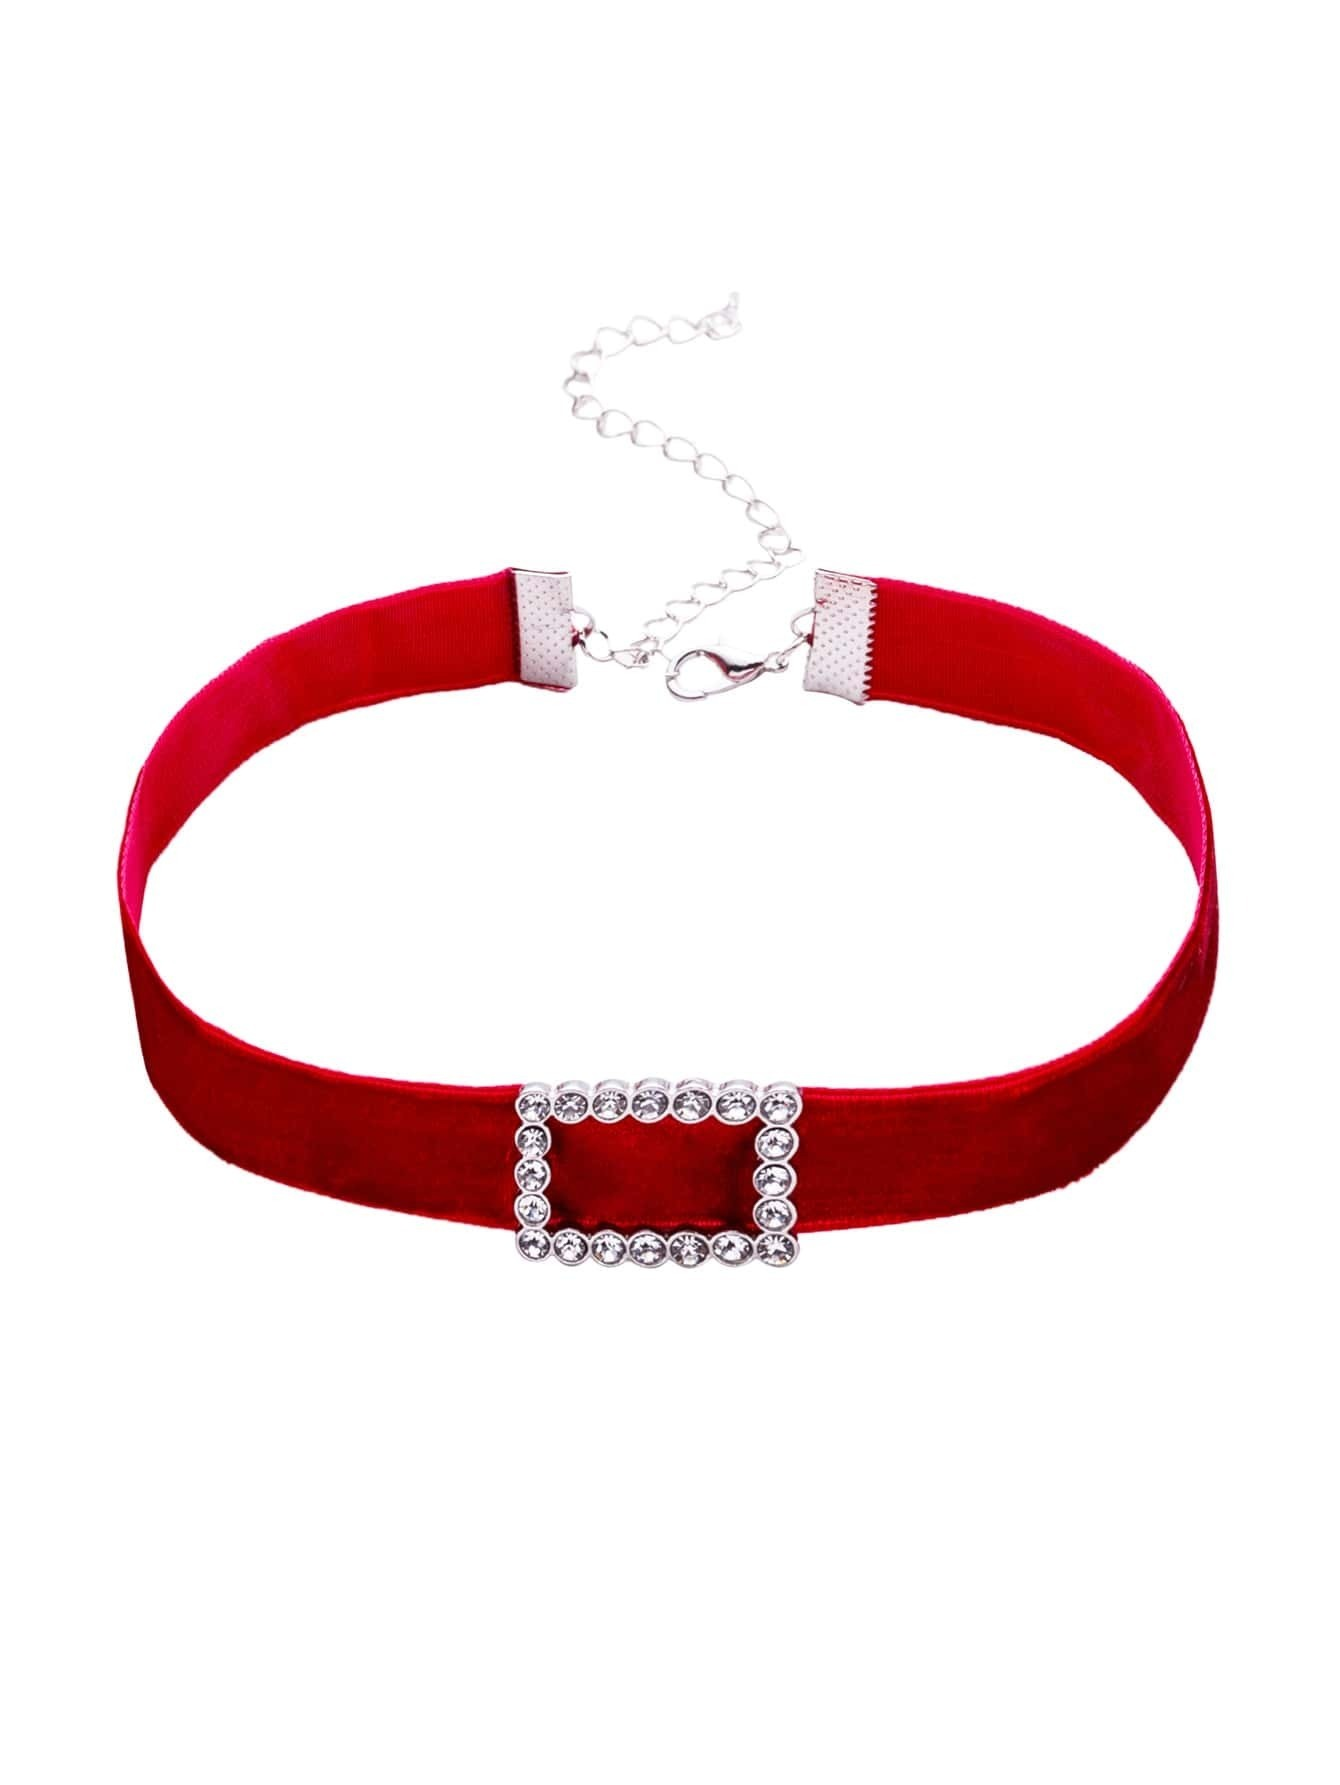 Collier ras du cou velours rectangle strass rouge french for Interieur paupiere inferieure rouge